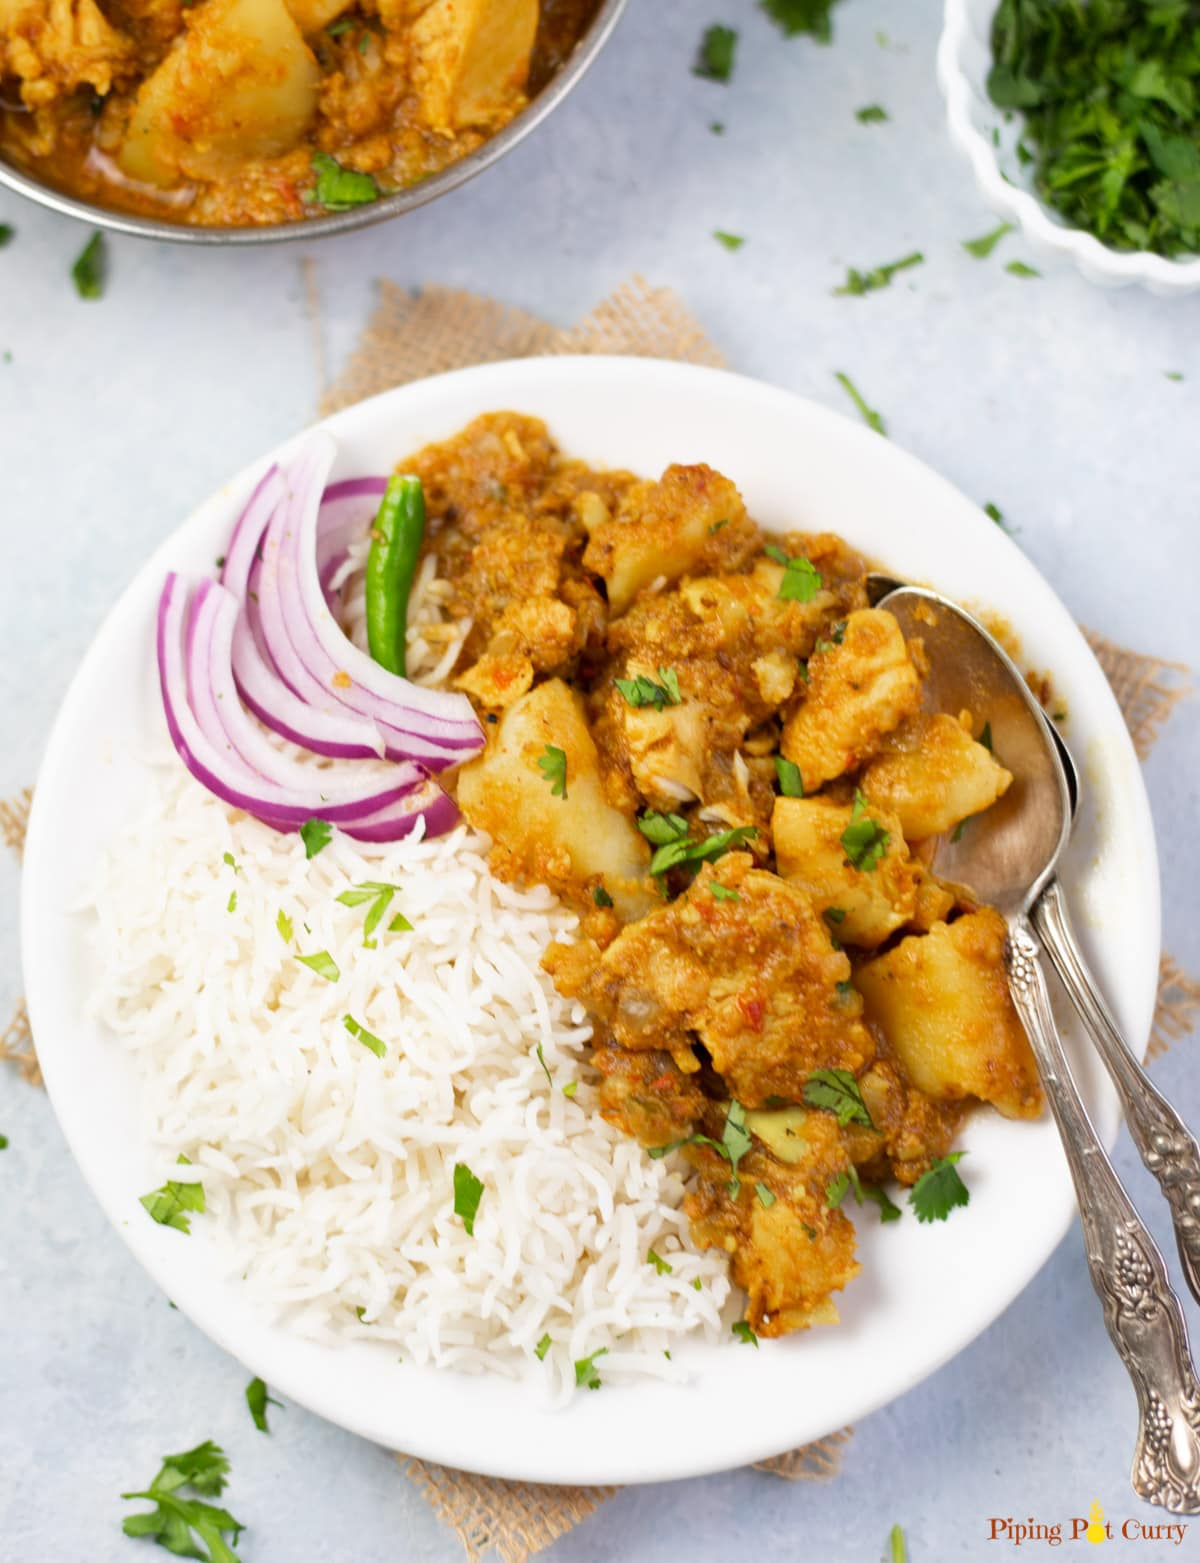 Chicken and potato curry with rice and red onions in a white plate